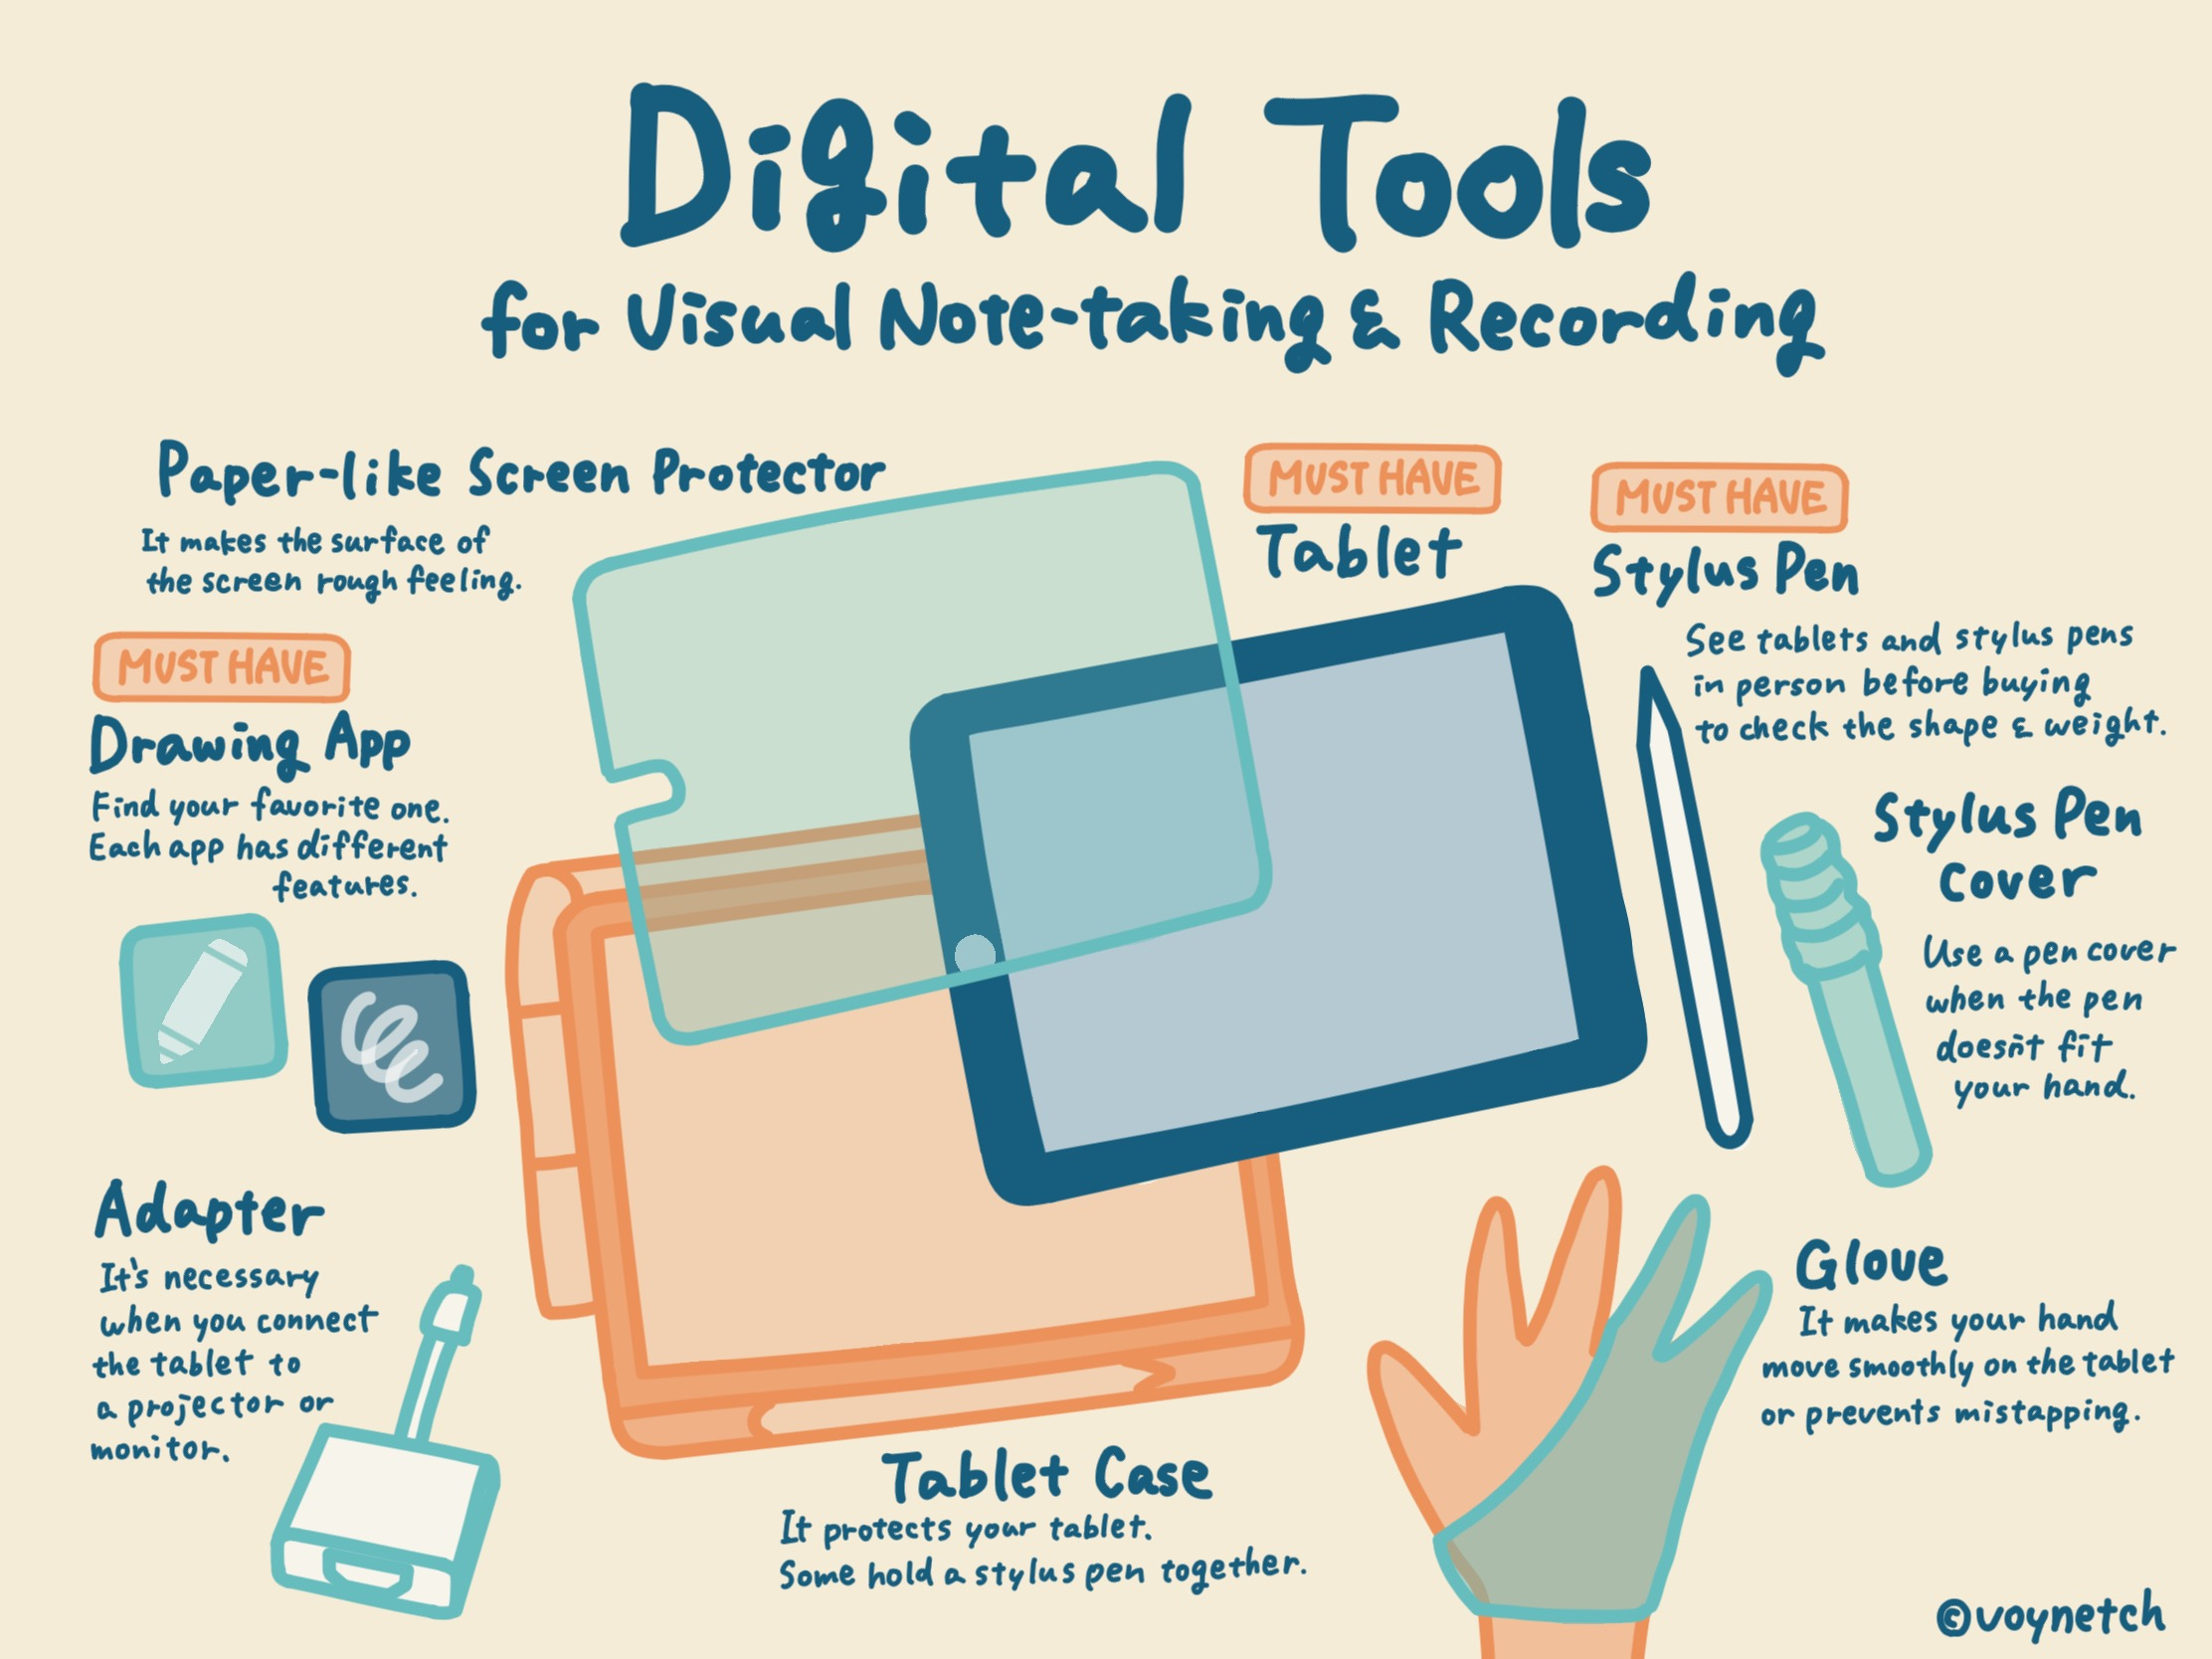 Digital Tools for Visual Note-taking & Recording Image